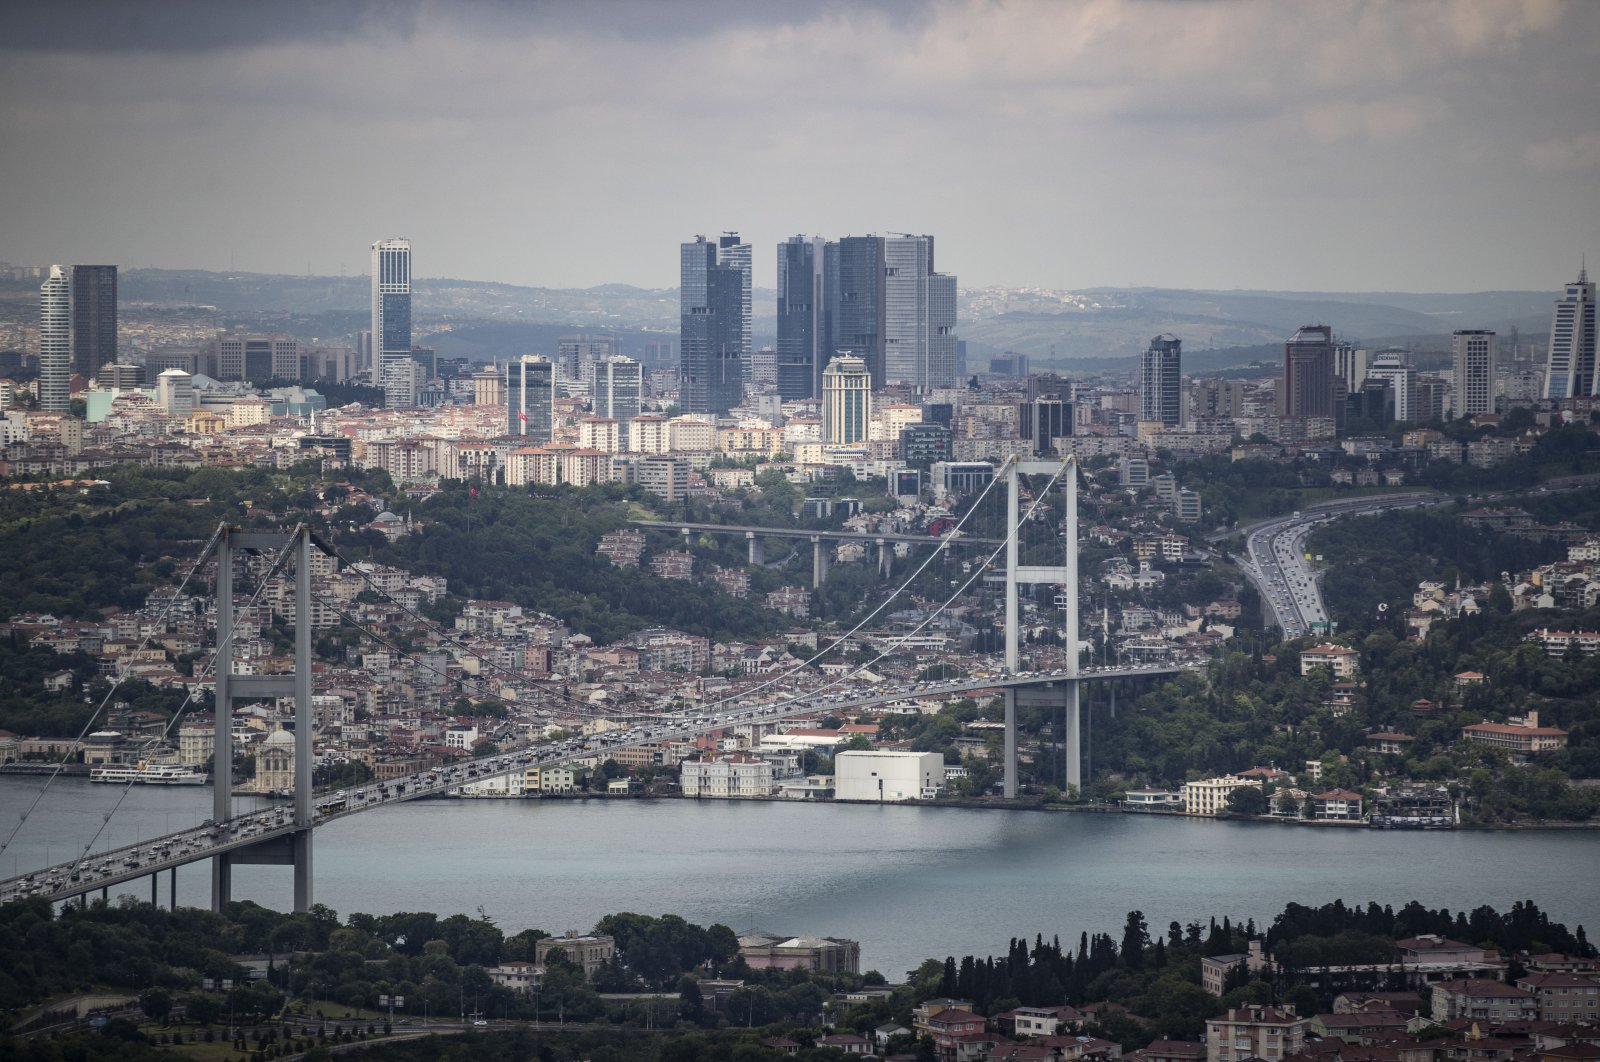 Buildings can be seen behind the July 15 Martyrs Bridge, formerly known as the Bosporus Bridge, Istanbul, Turkey. (AA File Photo)